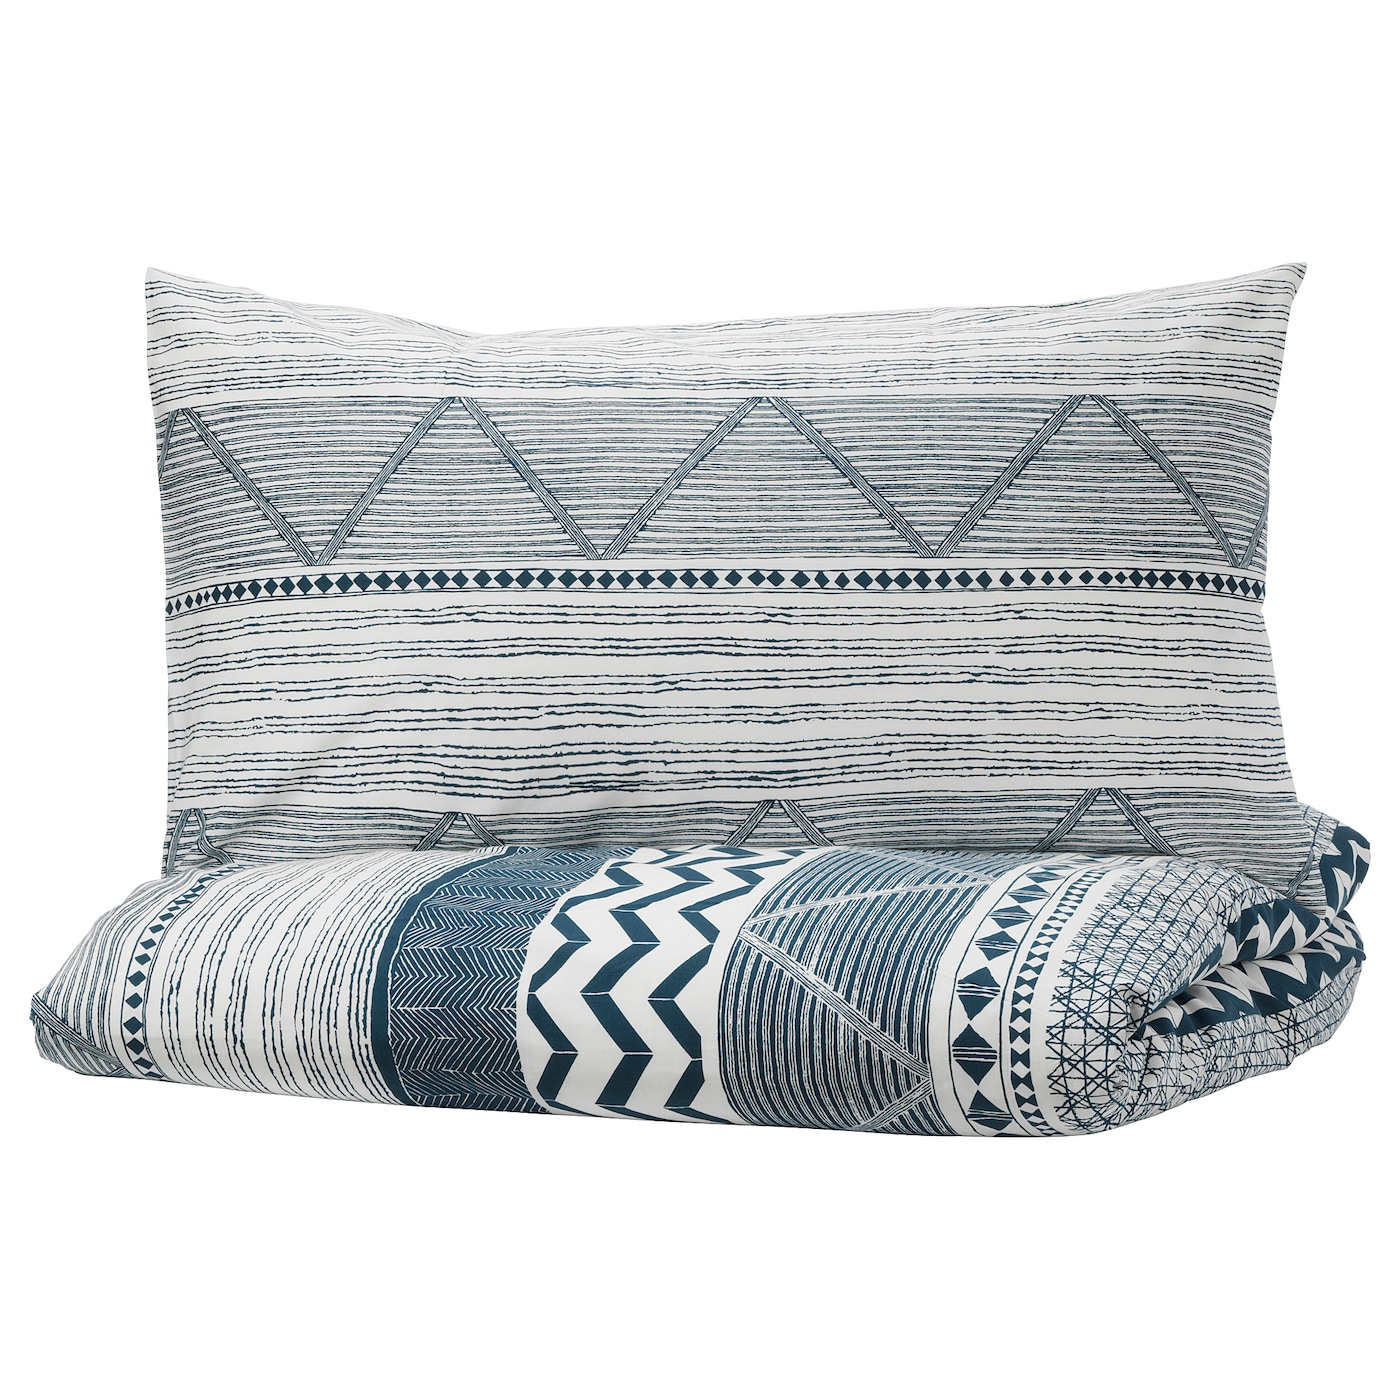 IKEA PROVINSROS quilt cover and pillowcase Pure cotton that feels soft and nice against your skin.